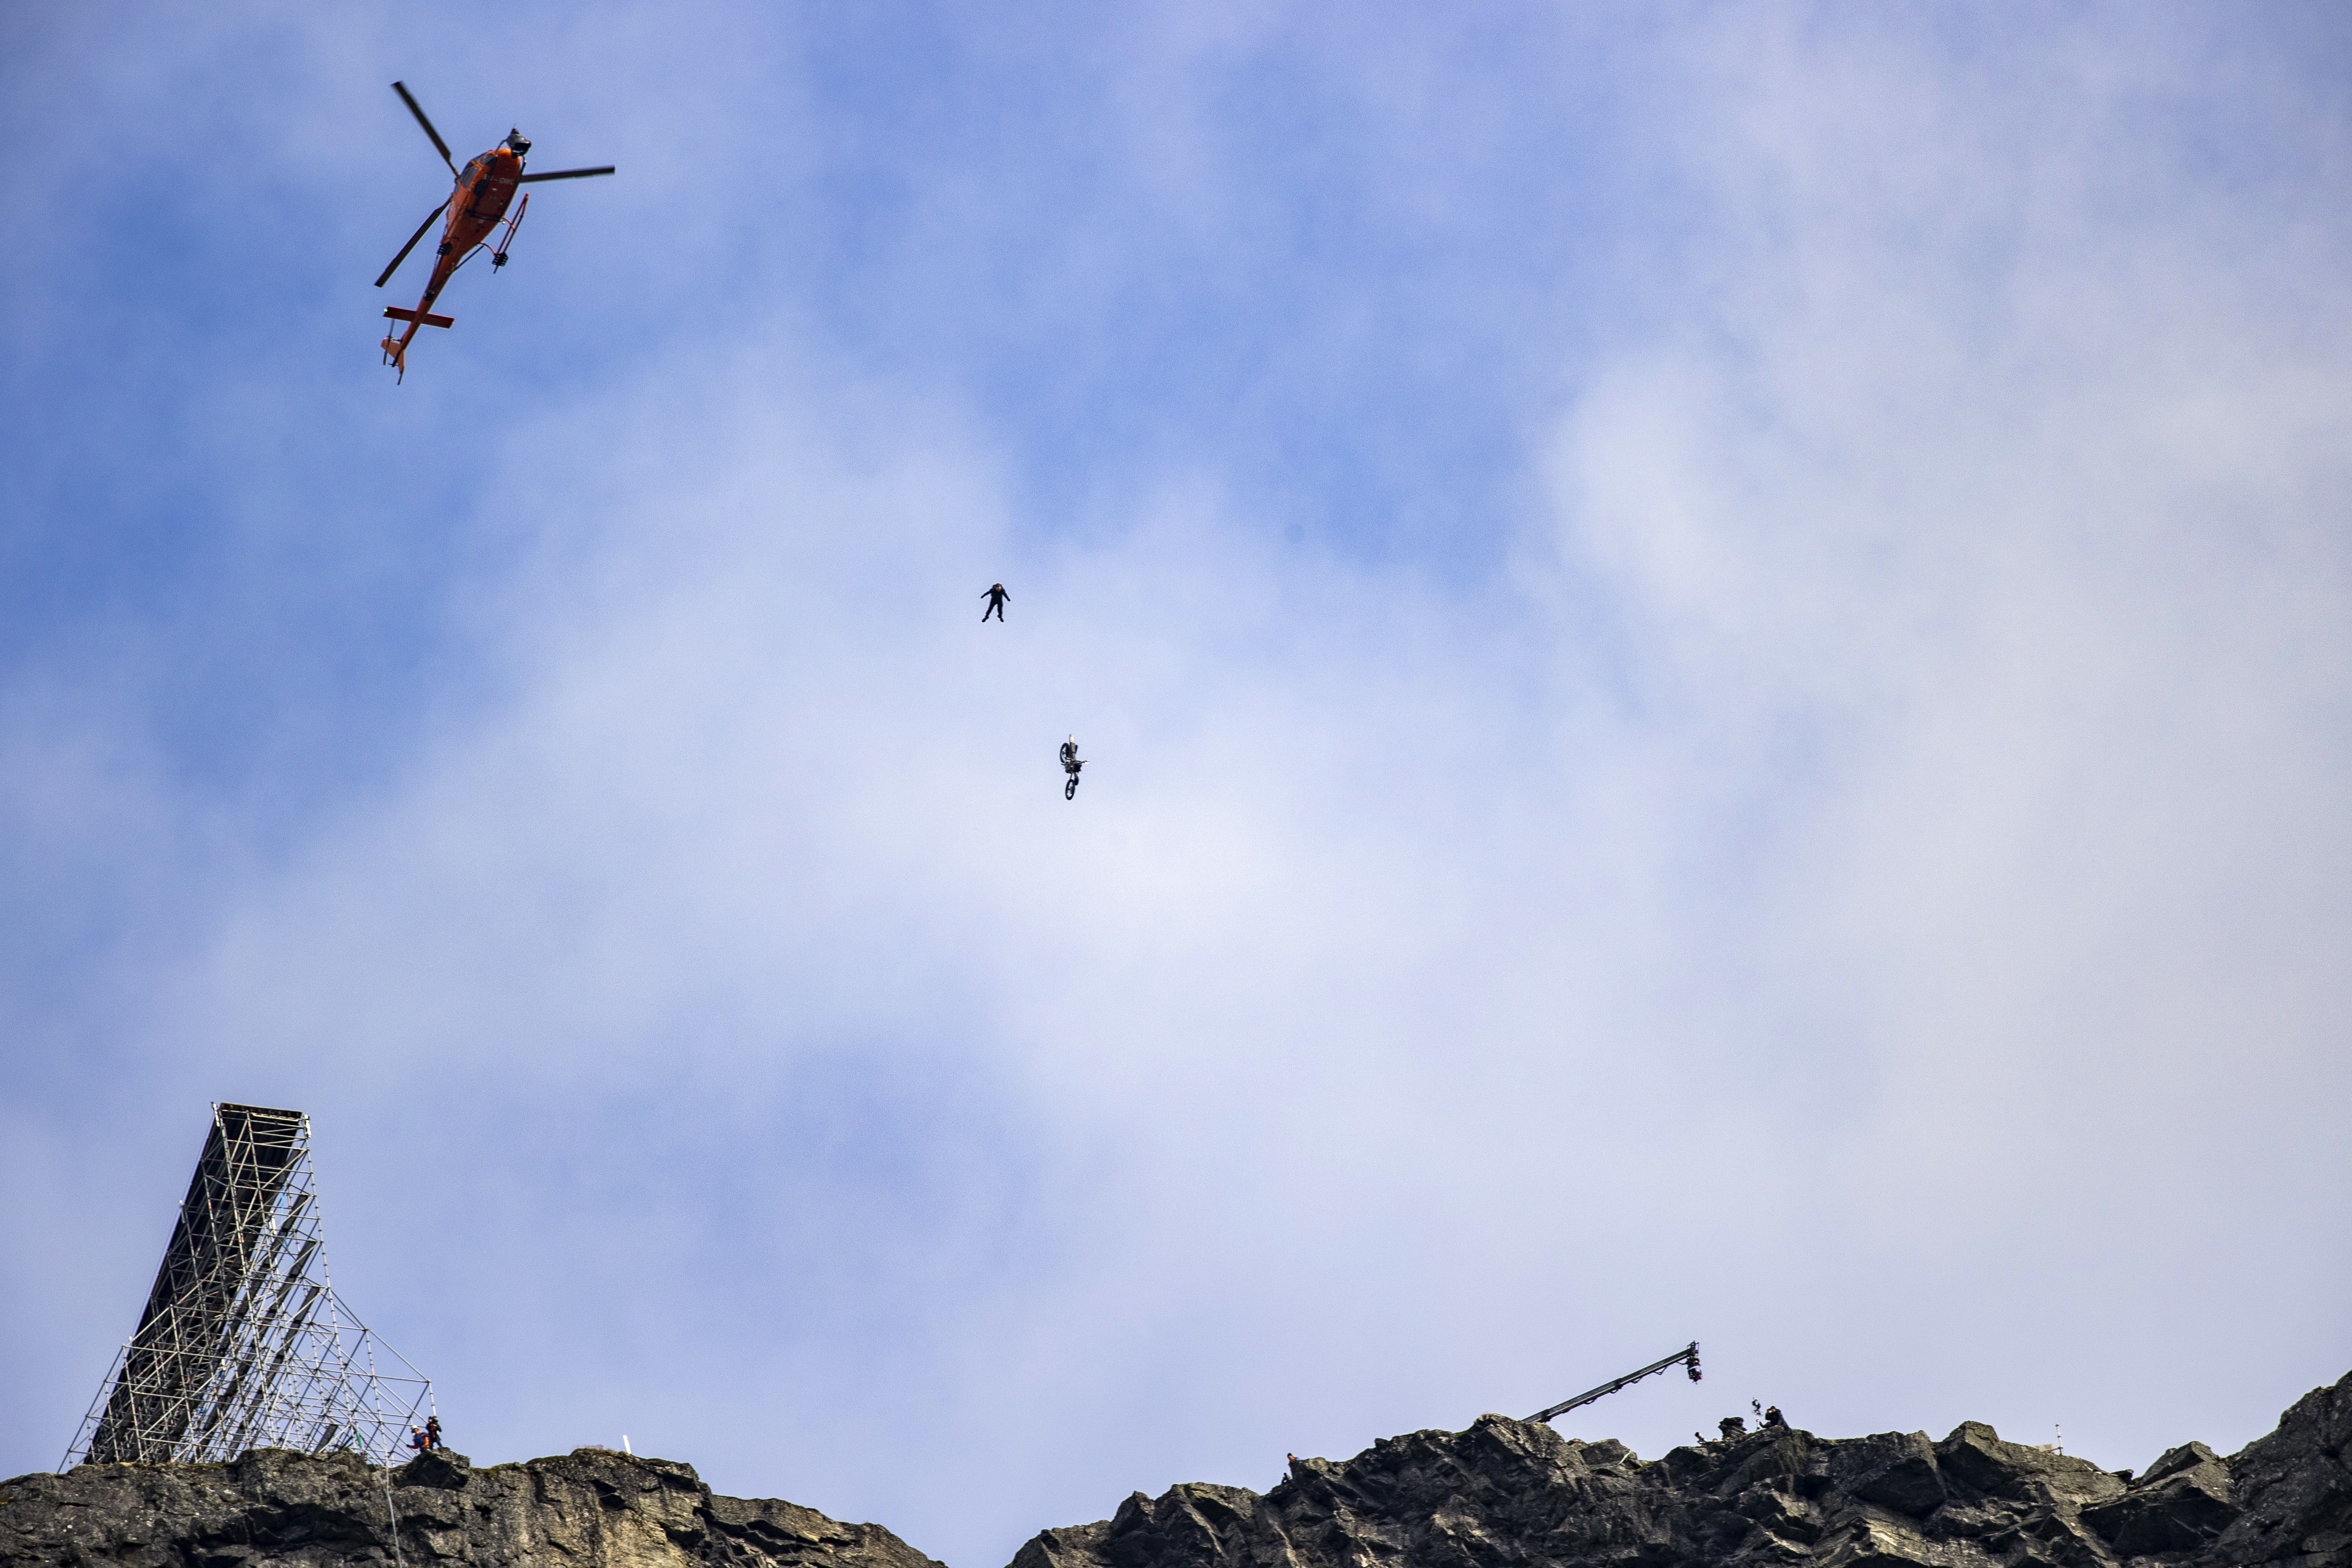 """Actor Tom Cruise in the air at Helsetkopen near to Hellesylt during the recording of the next """"Mission: Impossible"""" film, Sunday Sept. 6, 2020.  After several days of waiting, the action hero completed four jumps with a motorcycle out of a huge ramp on the mountain top Helsetkopen near Hellesylt, Norway.  The bikes fell to the ground while Cruise landed by parachute down the steep mountainside. (Geir Olsen / NTB scanpix via AP)"""